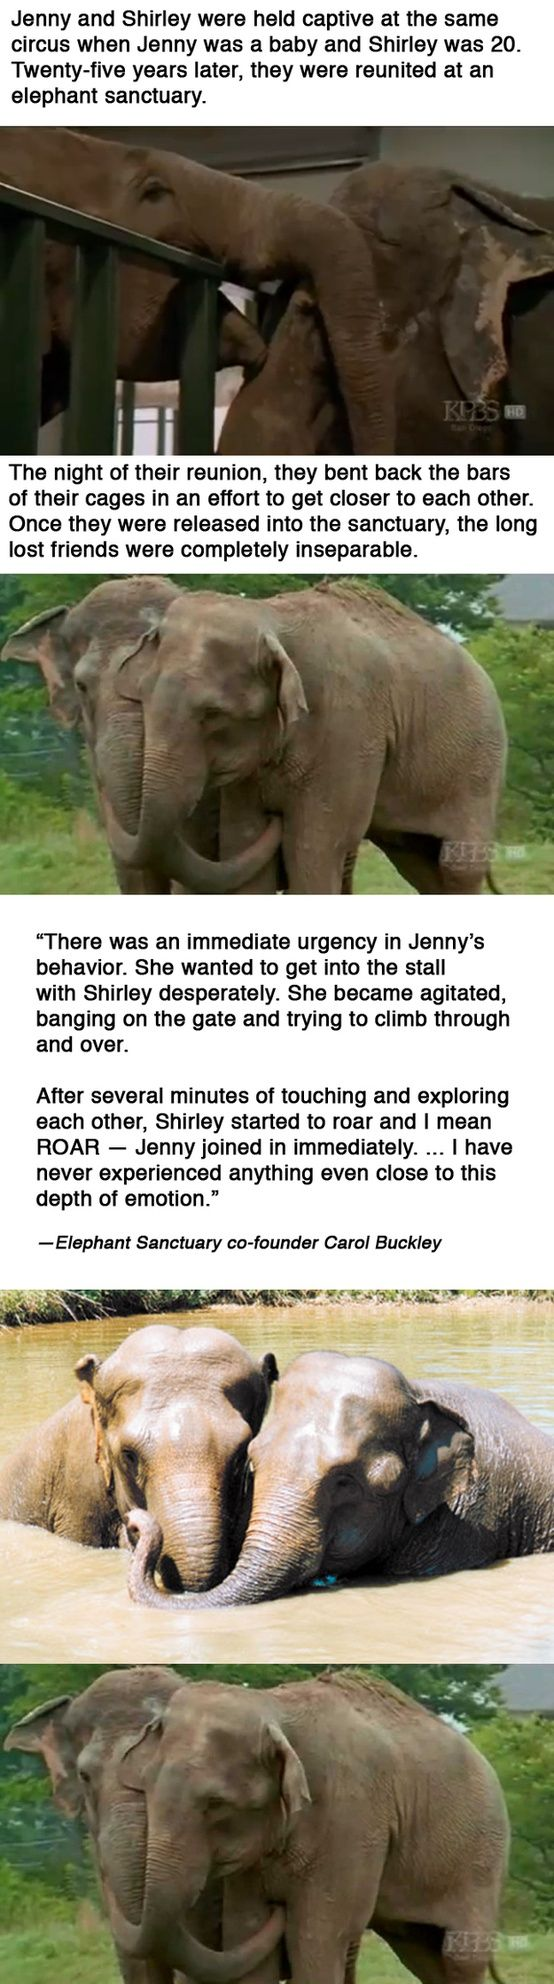 Whatever happened to Jenny and Shirley?  In 2000, The Urban Elephant brought viewers the touching story of Shirley and Jenny, two crippled elephants reunited at The Elephant Sanctuary in Tennessee after a 22-year separation. The bonding was immediate, intense and unforgettable between the two former circus elephants. But long after the cameras were turned off, the wondrous moments would continue….(click through to PBS to read more)